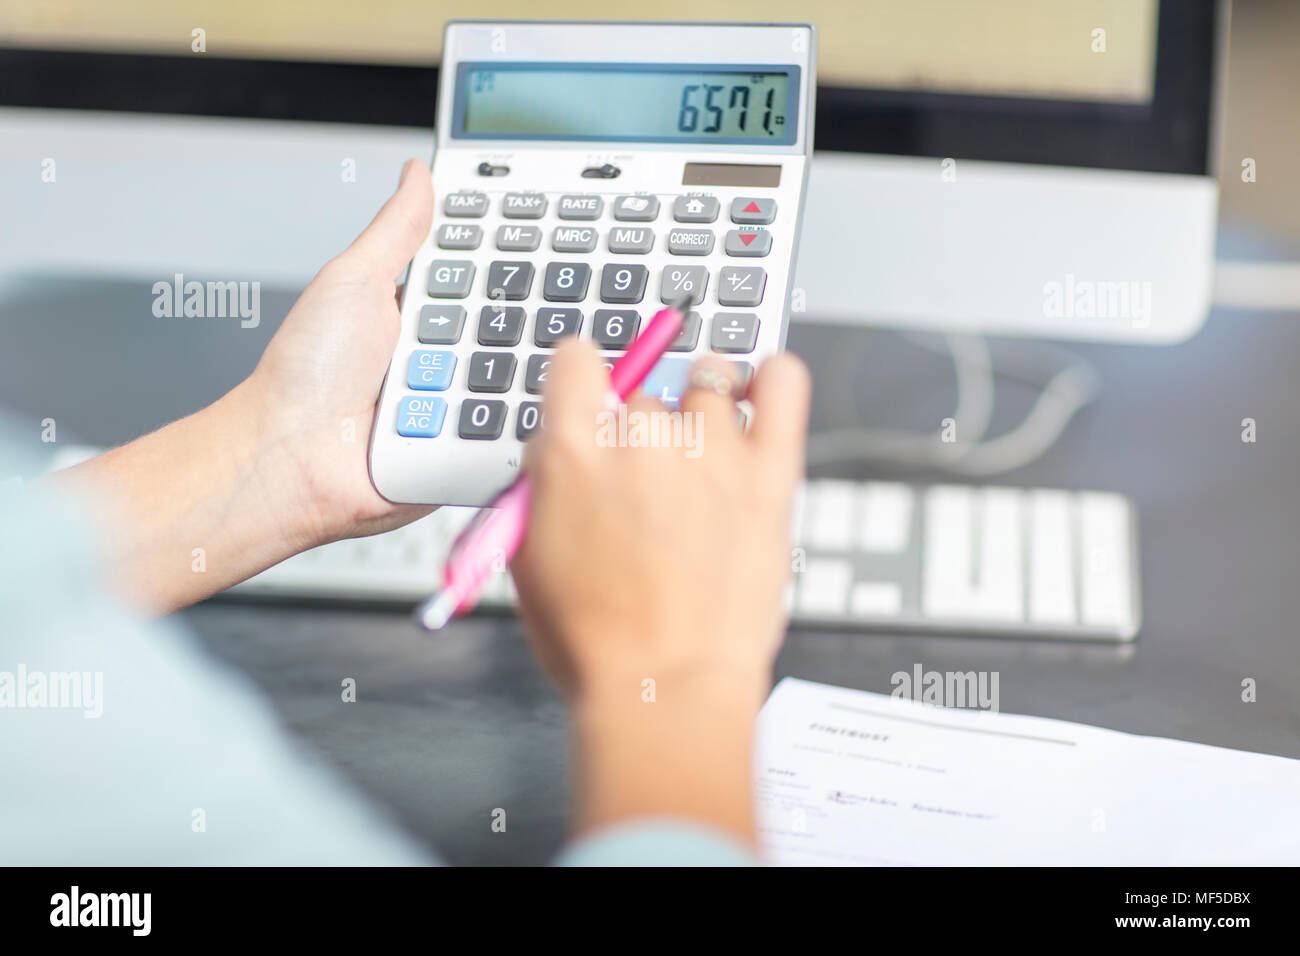 Woman at desk in office using calculator Stock Photo